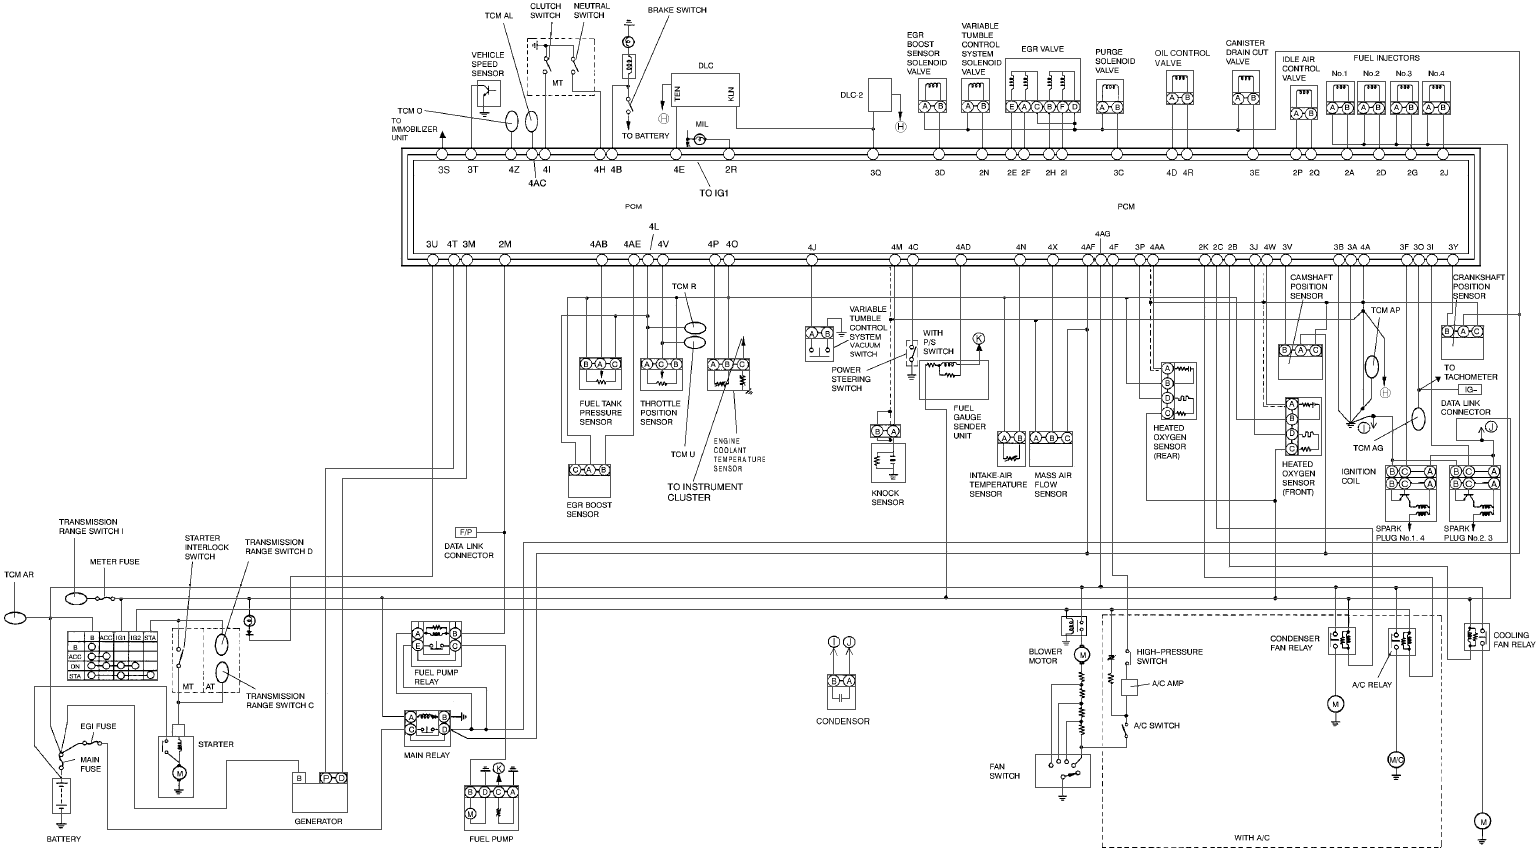 159817d1453082567 02 vvt diypnp no tach signal 80 ecu_wiring_diagram_2002_4ae78d12c662f18664e3b9e2b87030f6745081ab?resize\\\\\=665%2C368 nissan tiida wiring diagram ac wire diagram phone system wiring on electric radiator fan wiring diagram 1995 mercury villager